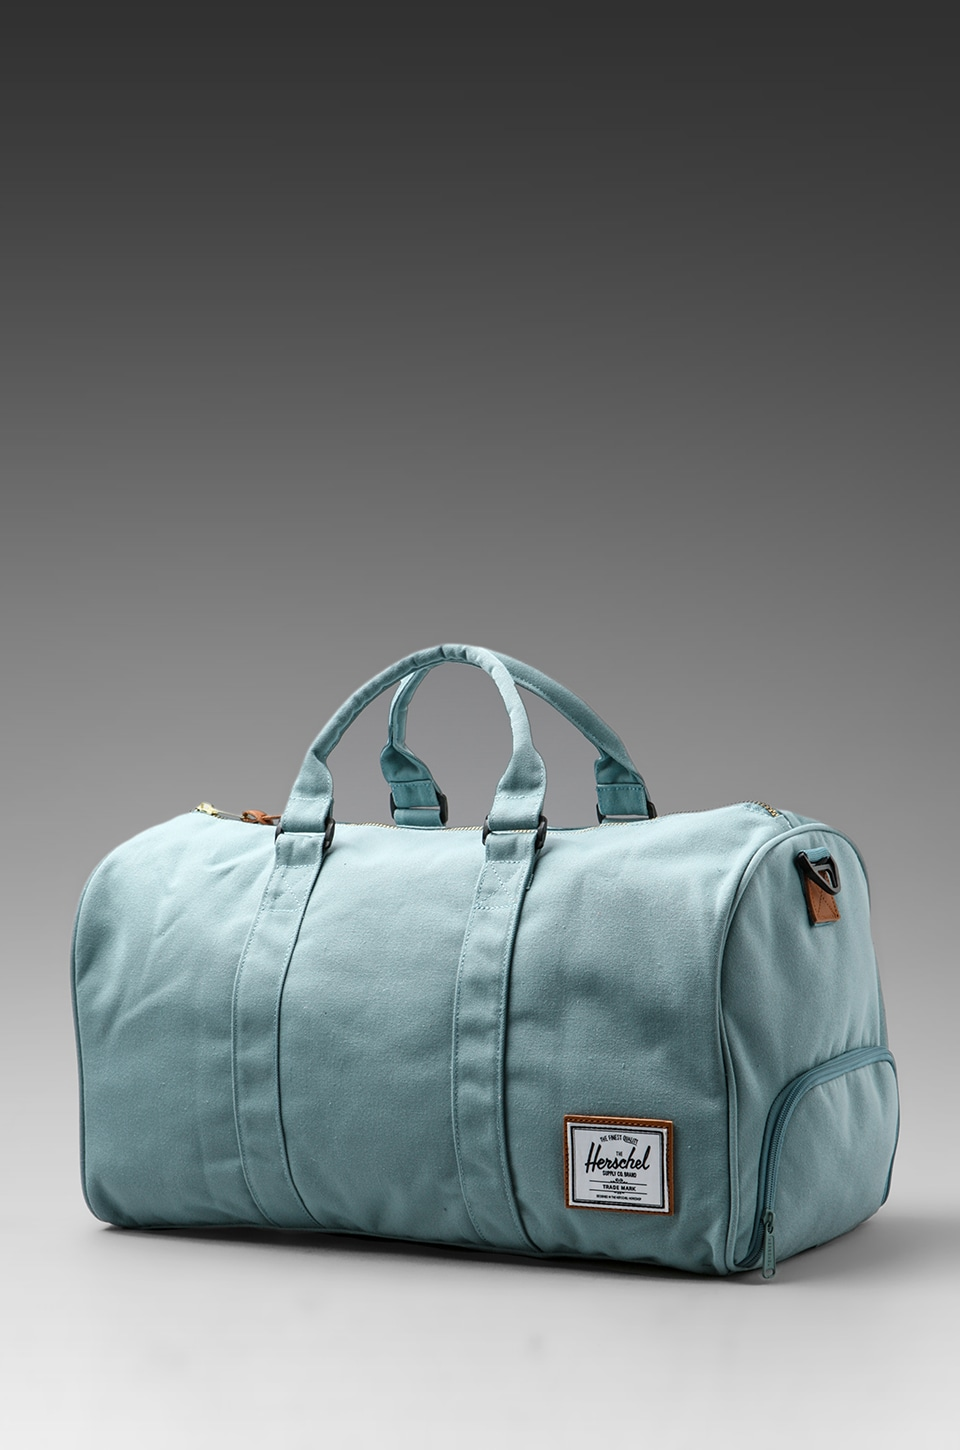 Herschel Supply Co. Bad Hills Workshop Novel Duffle in Seam Foam w. Bird Lining